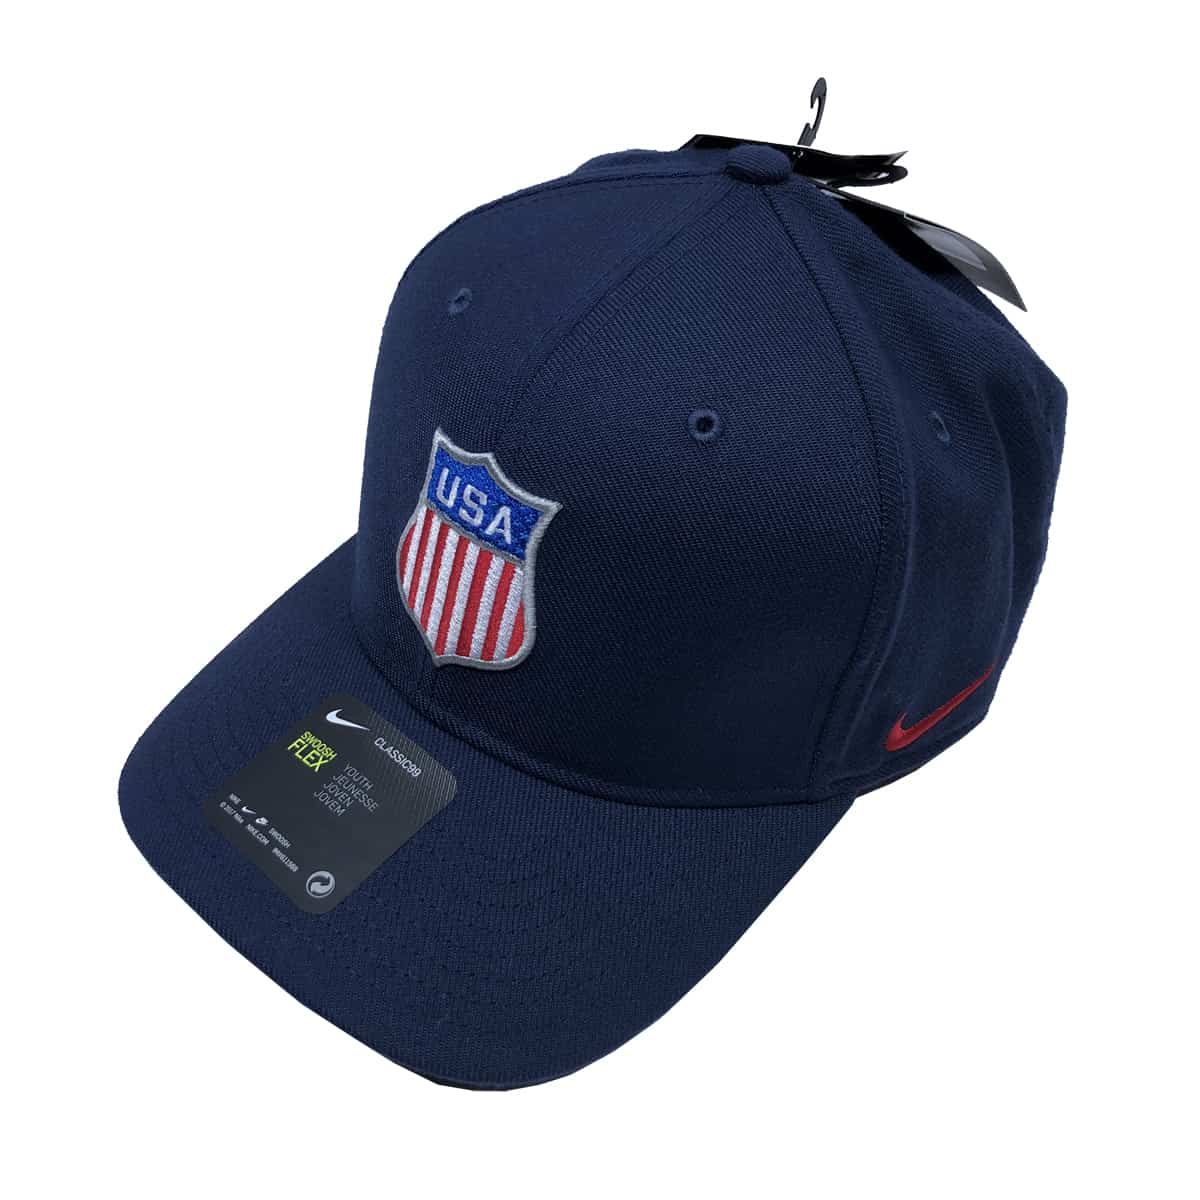 USA Hockey Nike Classic 99 DRI-FIT Flex Shield Hat in Navy (Front)